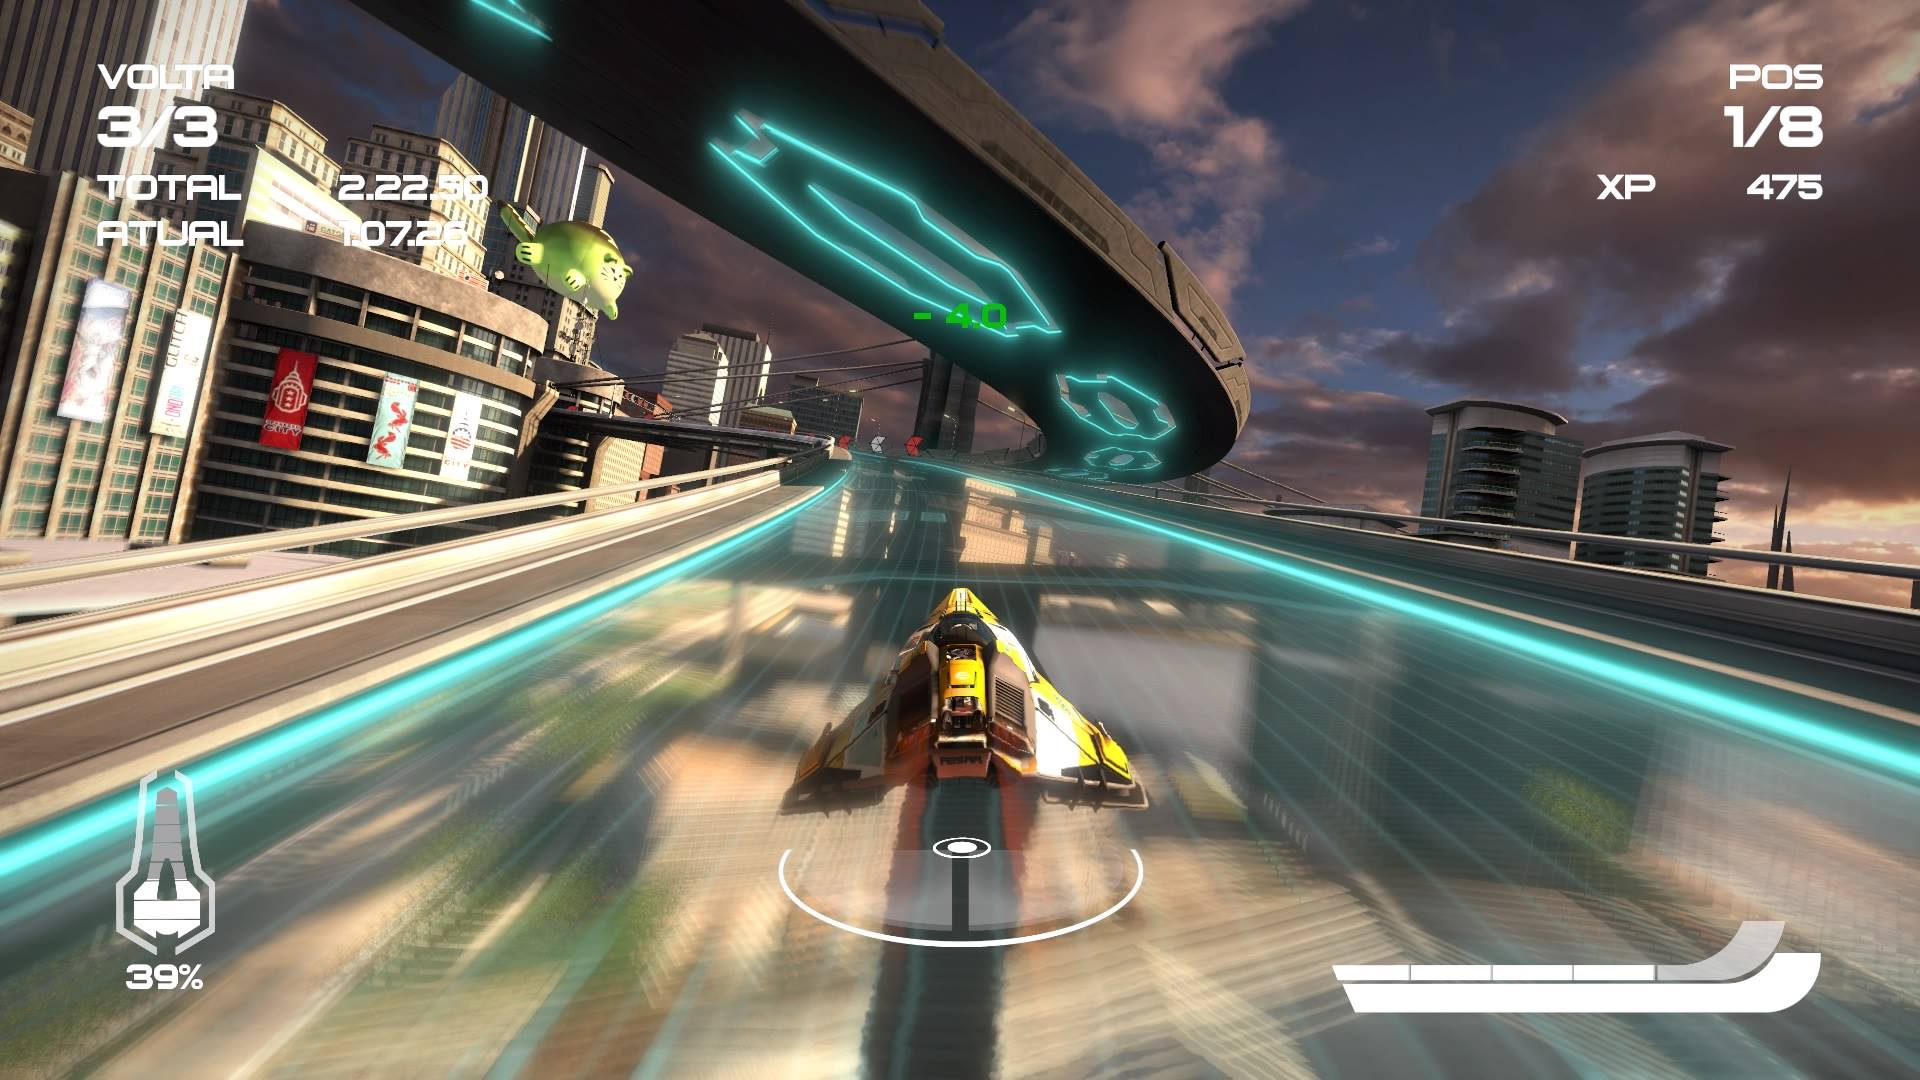 Wipeout: Omega Collection: Vale a Pena? 7